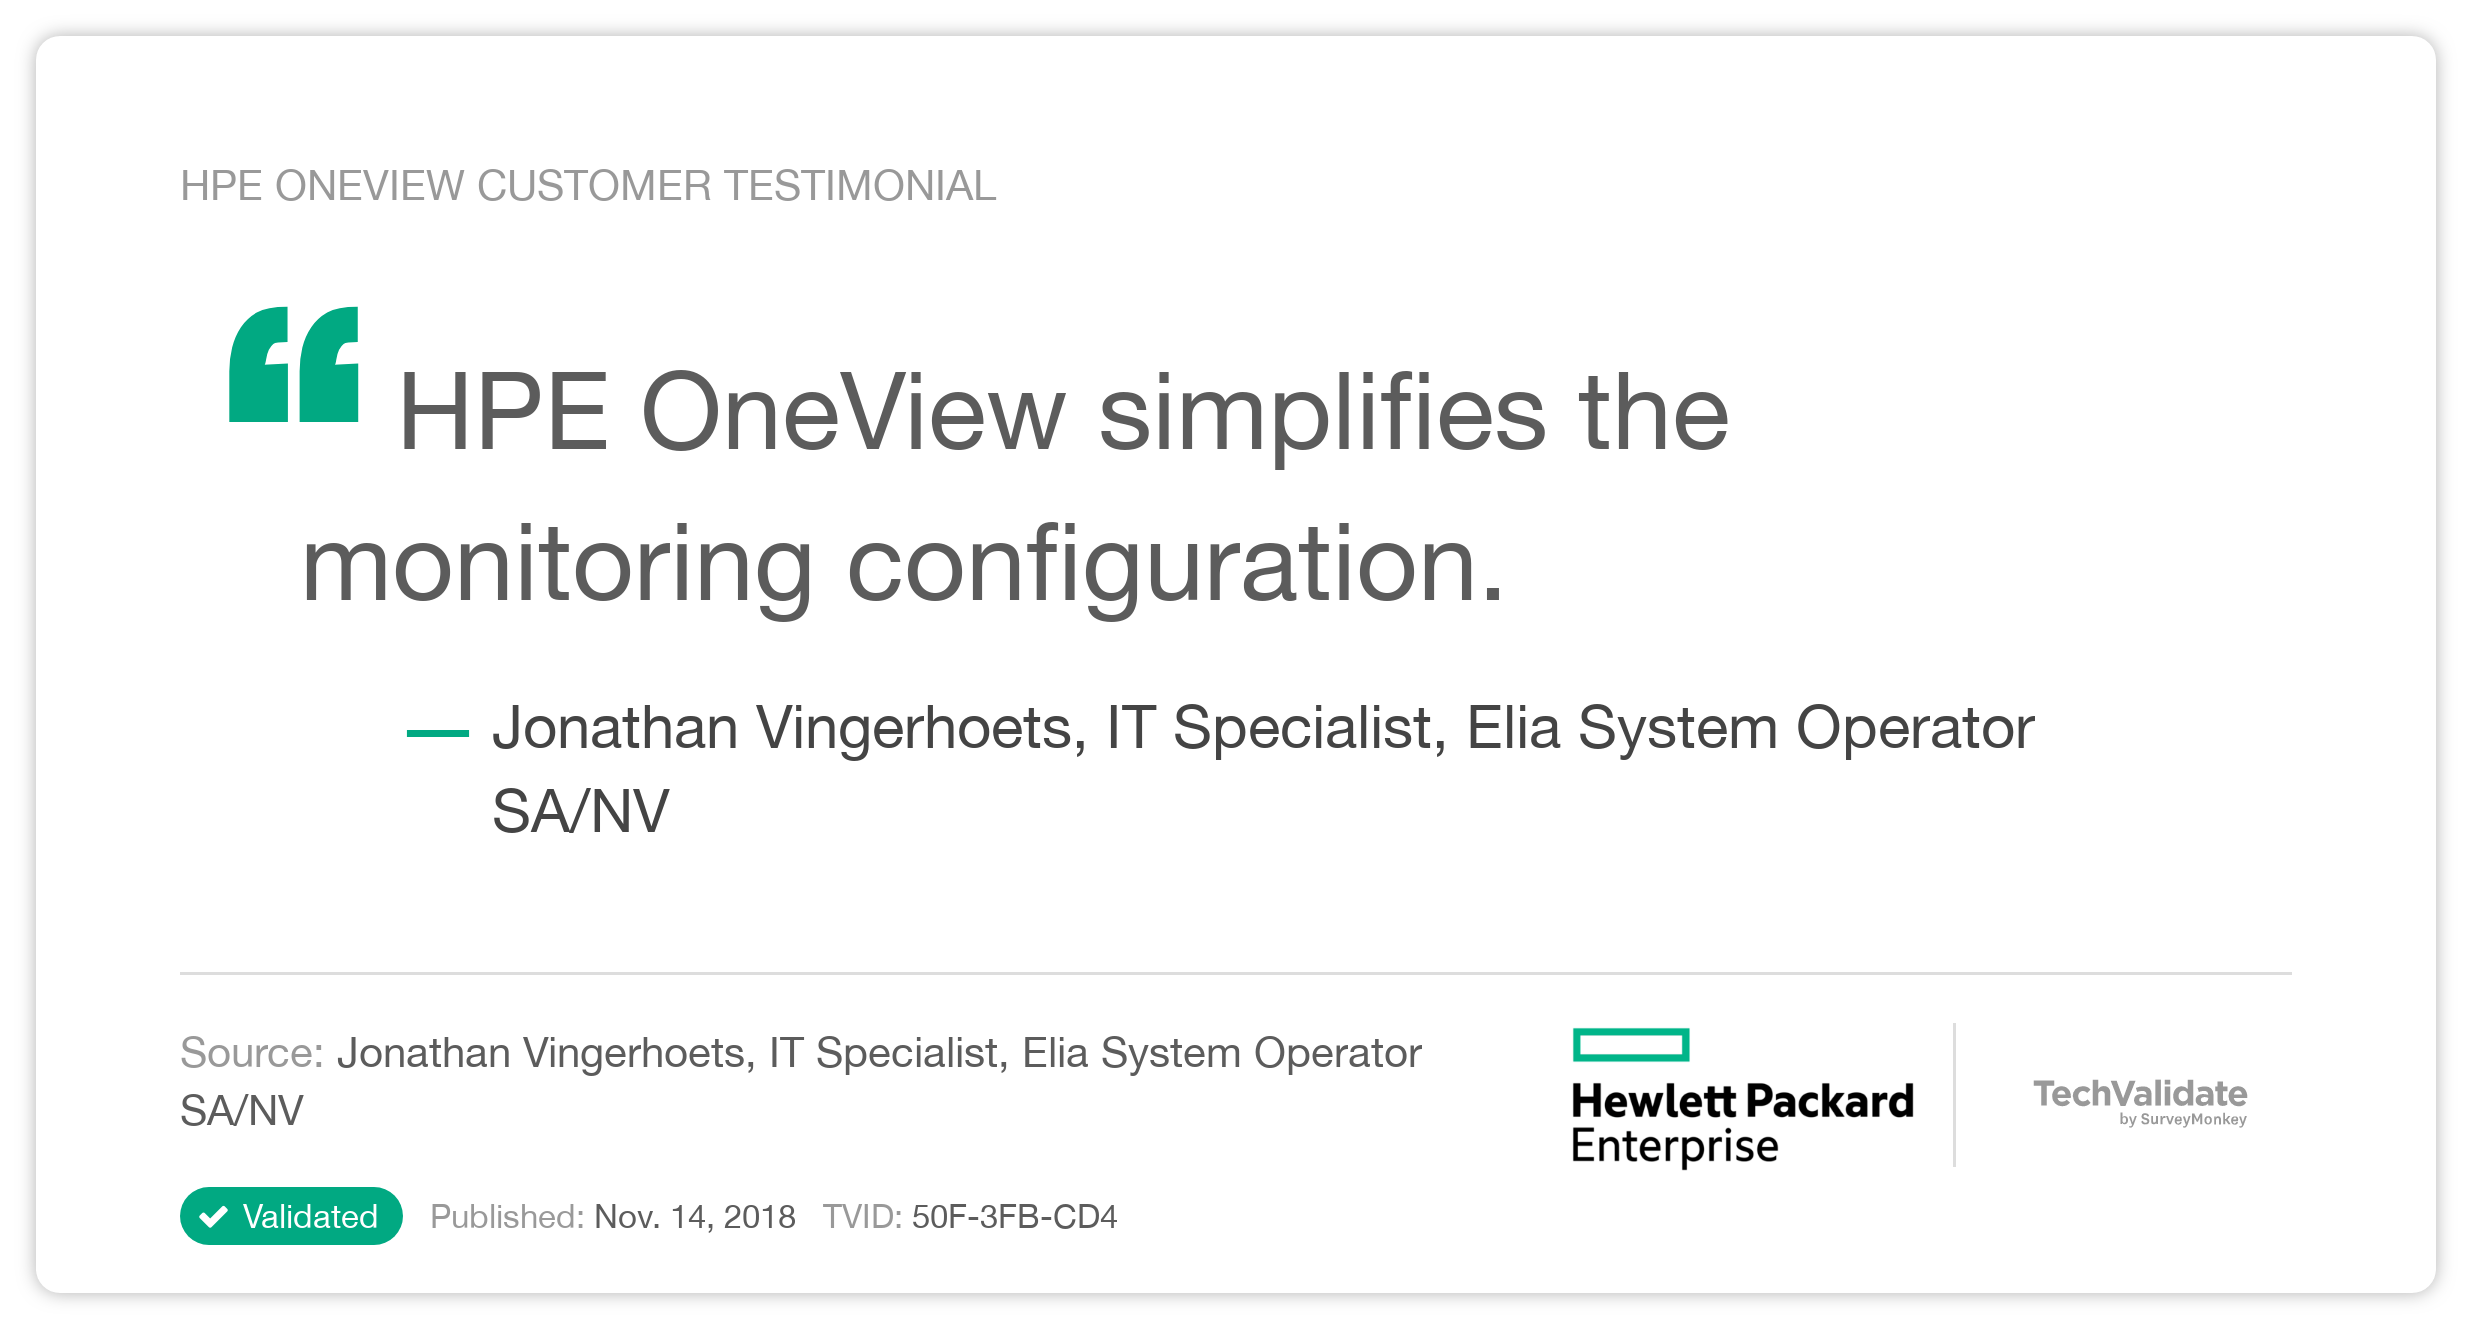 HPE OneView Customer Testimonial